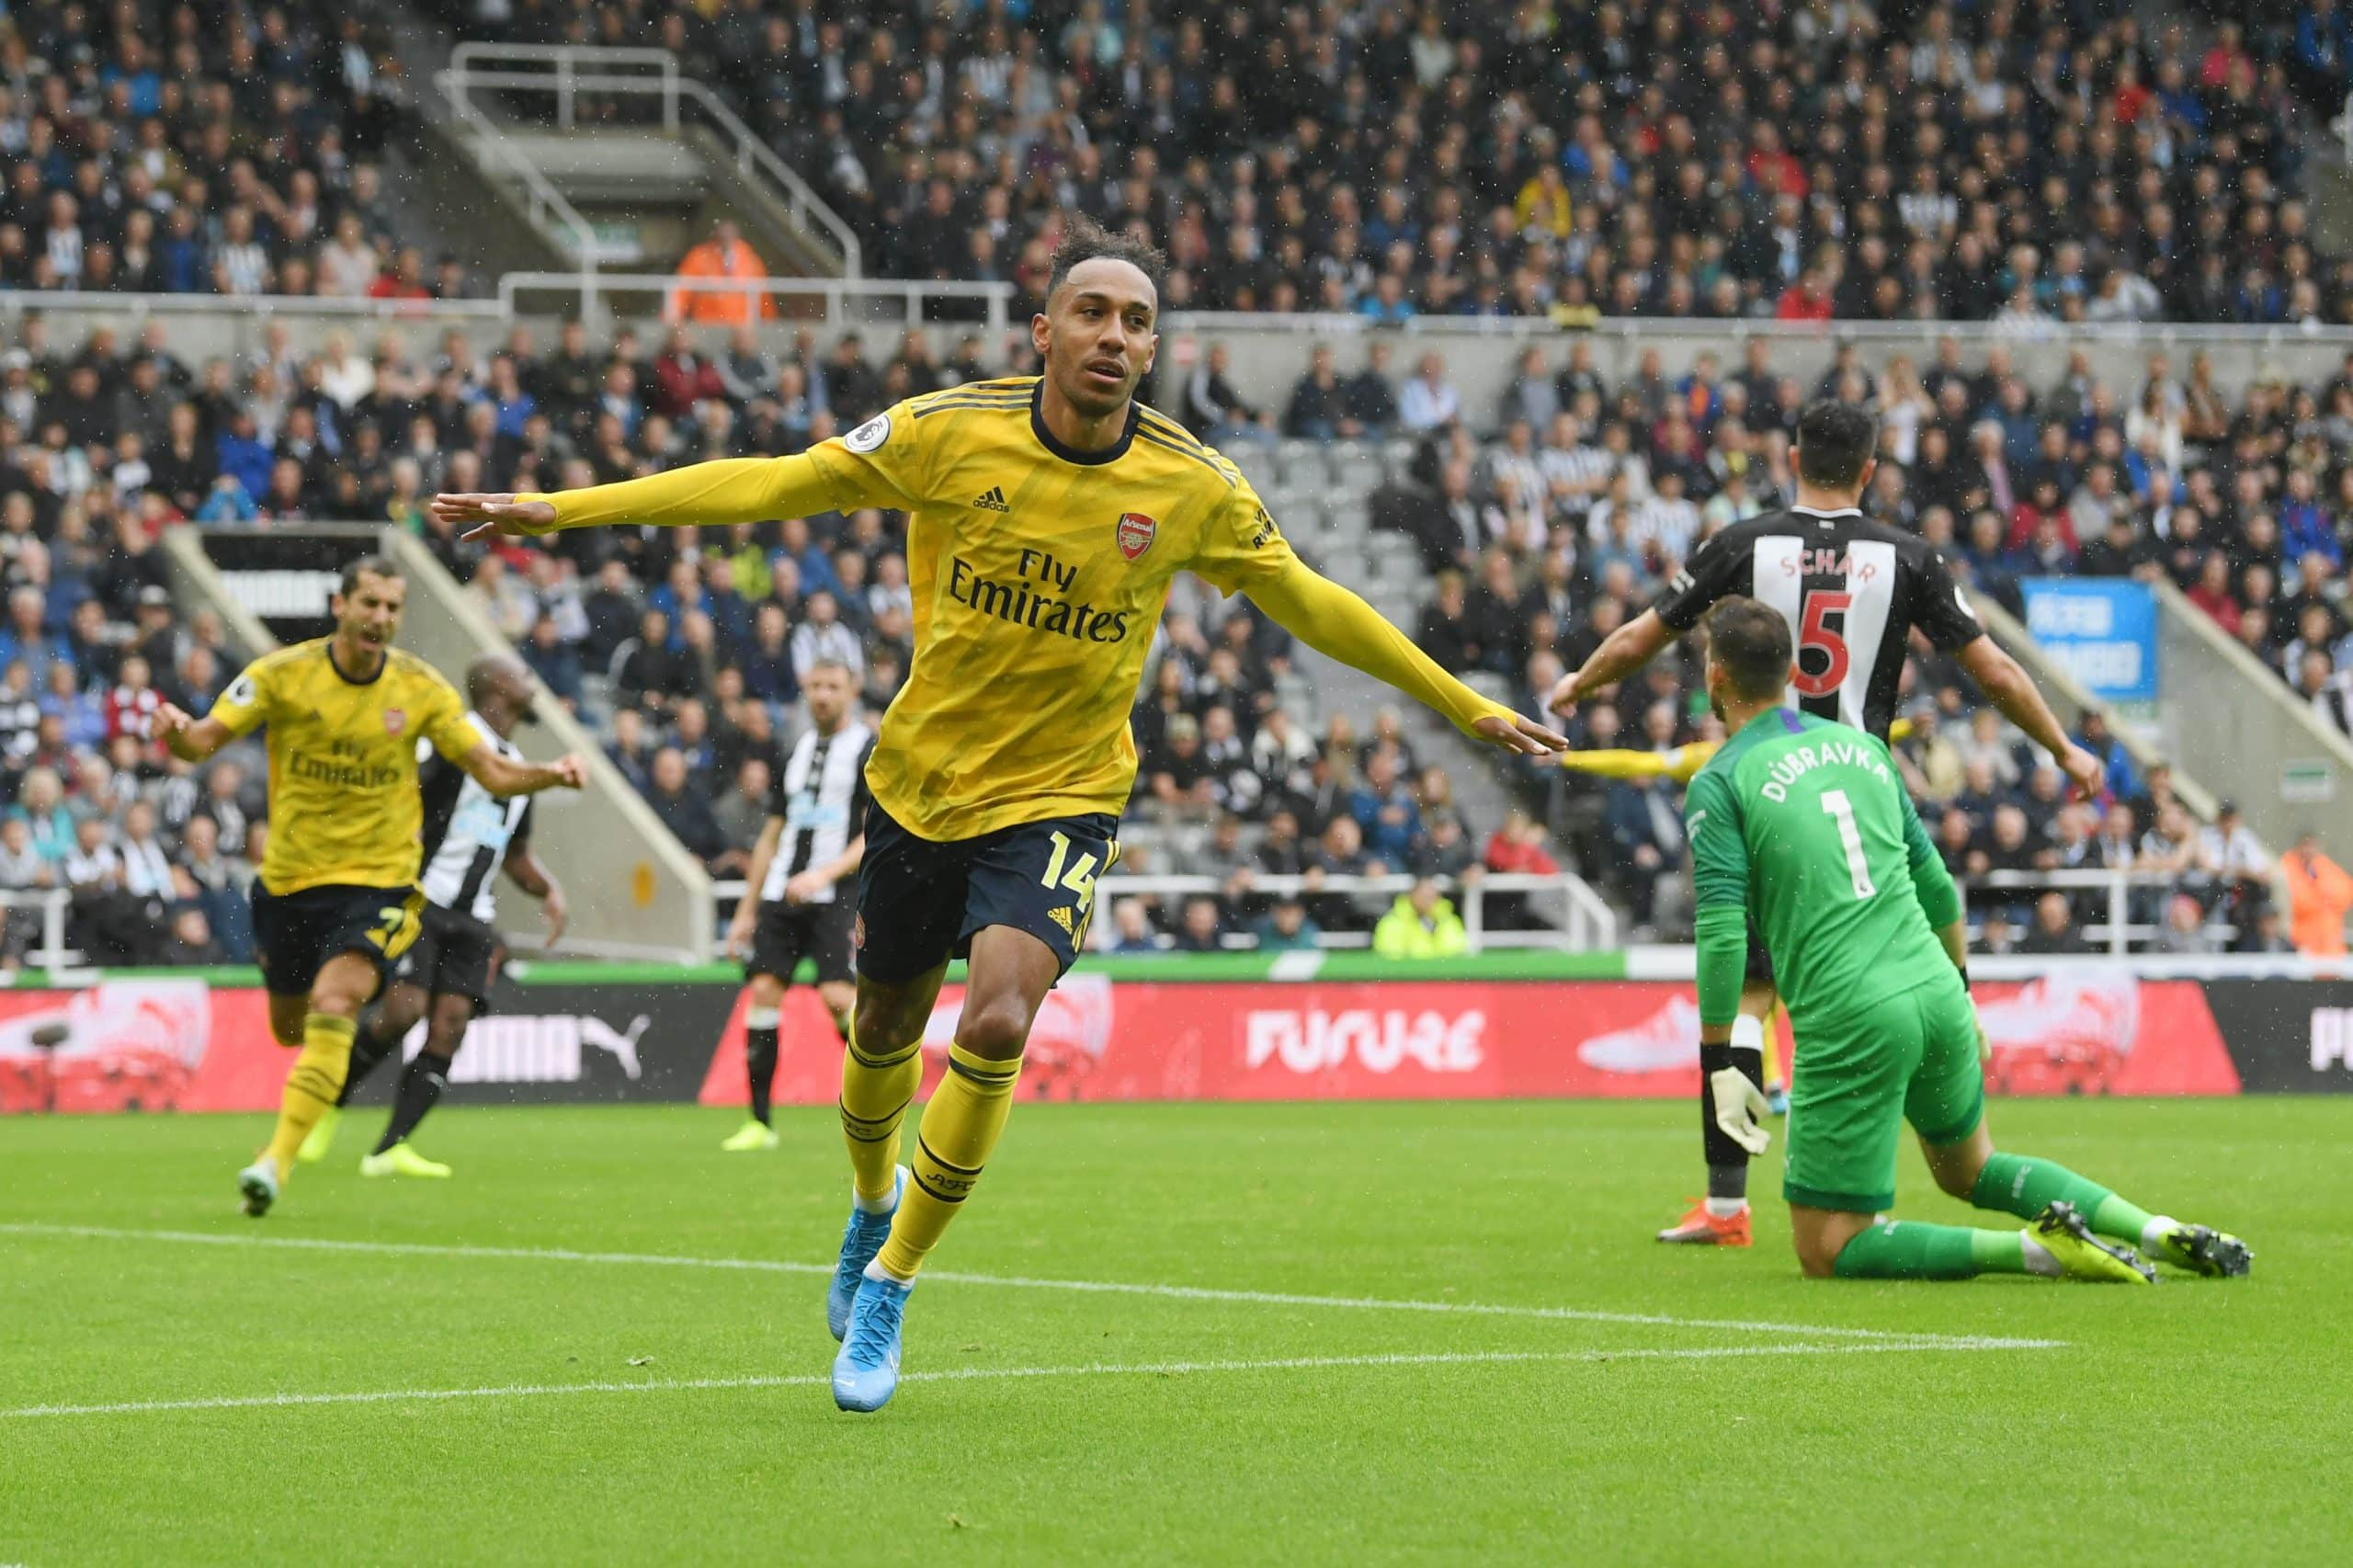 Reiss Nelson on his Arsenal ambitions and impact of Nicolas Pepe